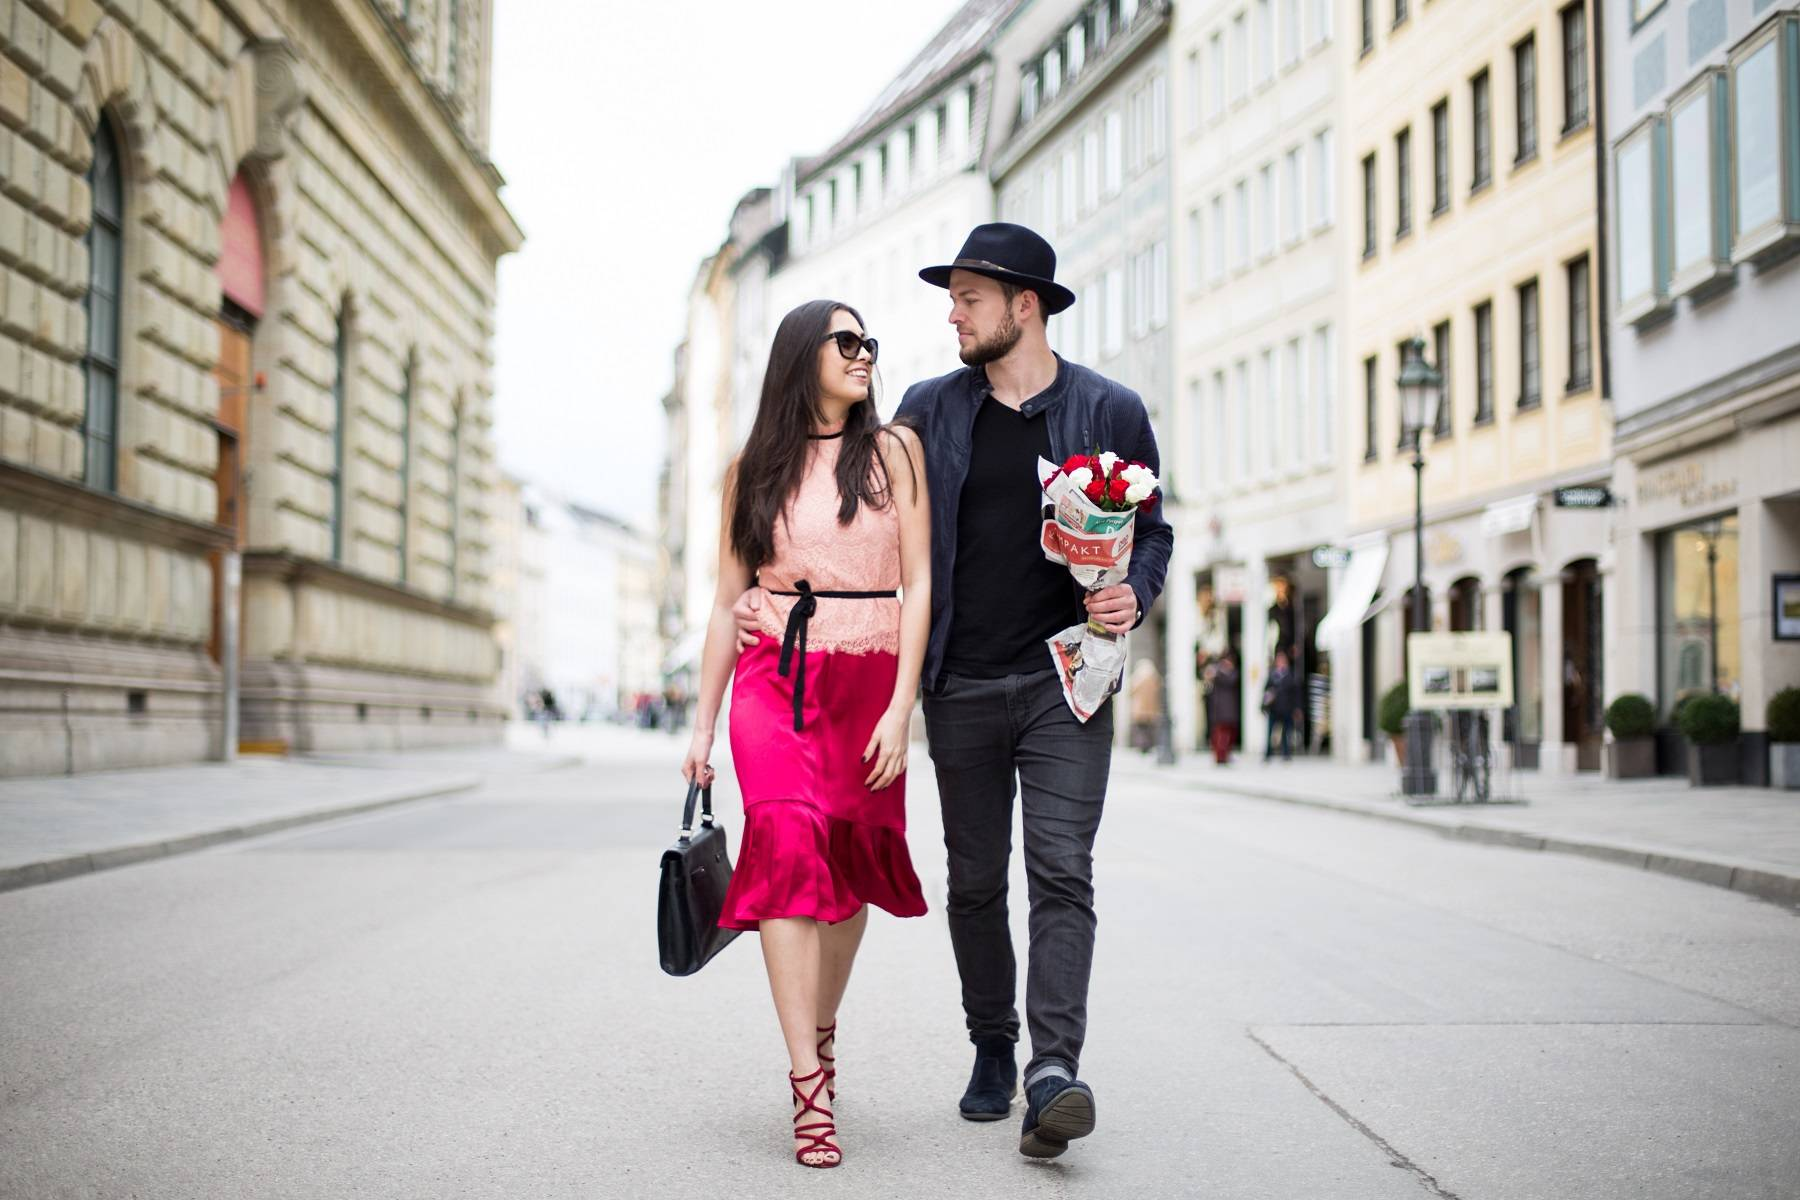 Valentinstag - Be My Valentine - Couple Shooting - Streetstyle - Munich - German Fashionblogger - Annie P - Romantic Look - Ootd - Lookbook - Stylish Couple - München - H&M - Zara - Vintage Hermés